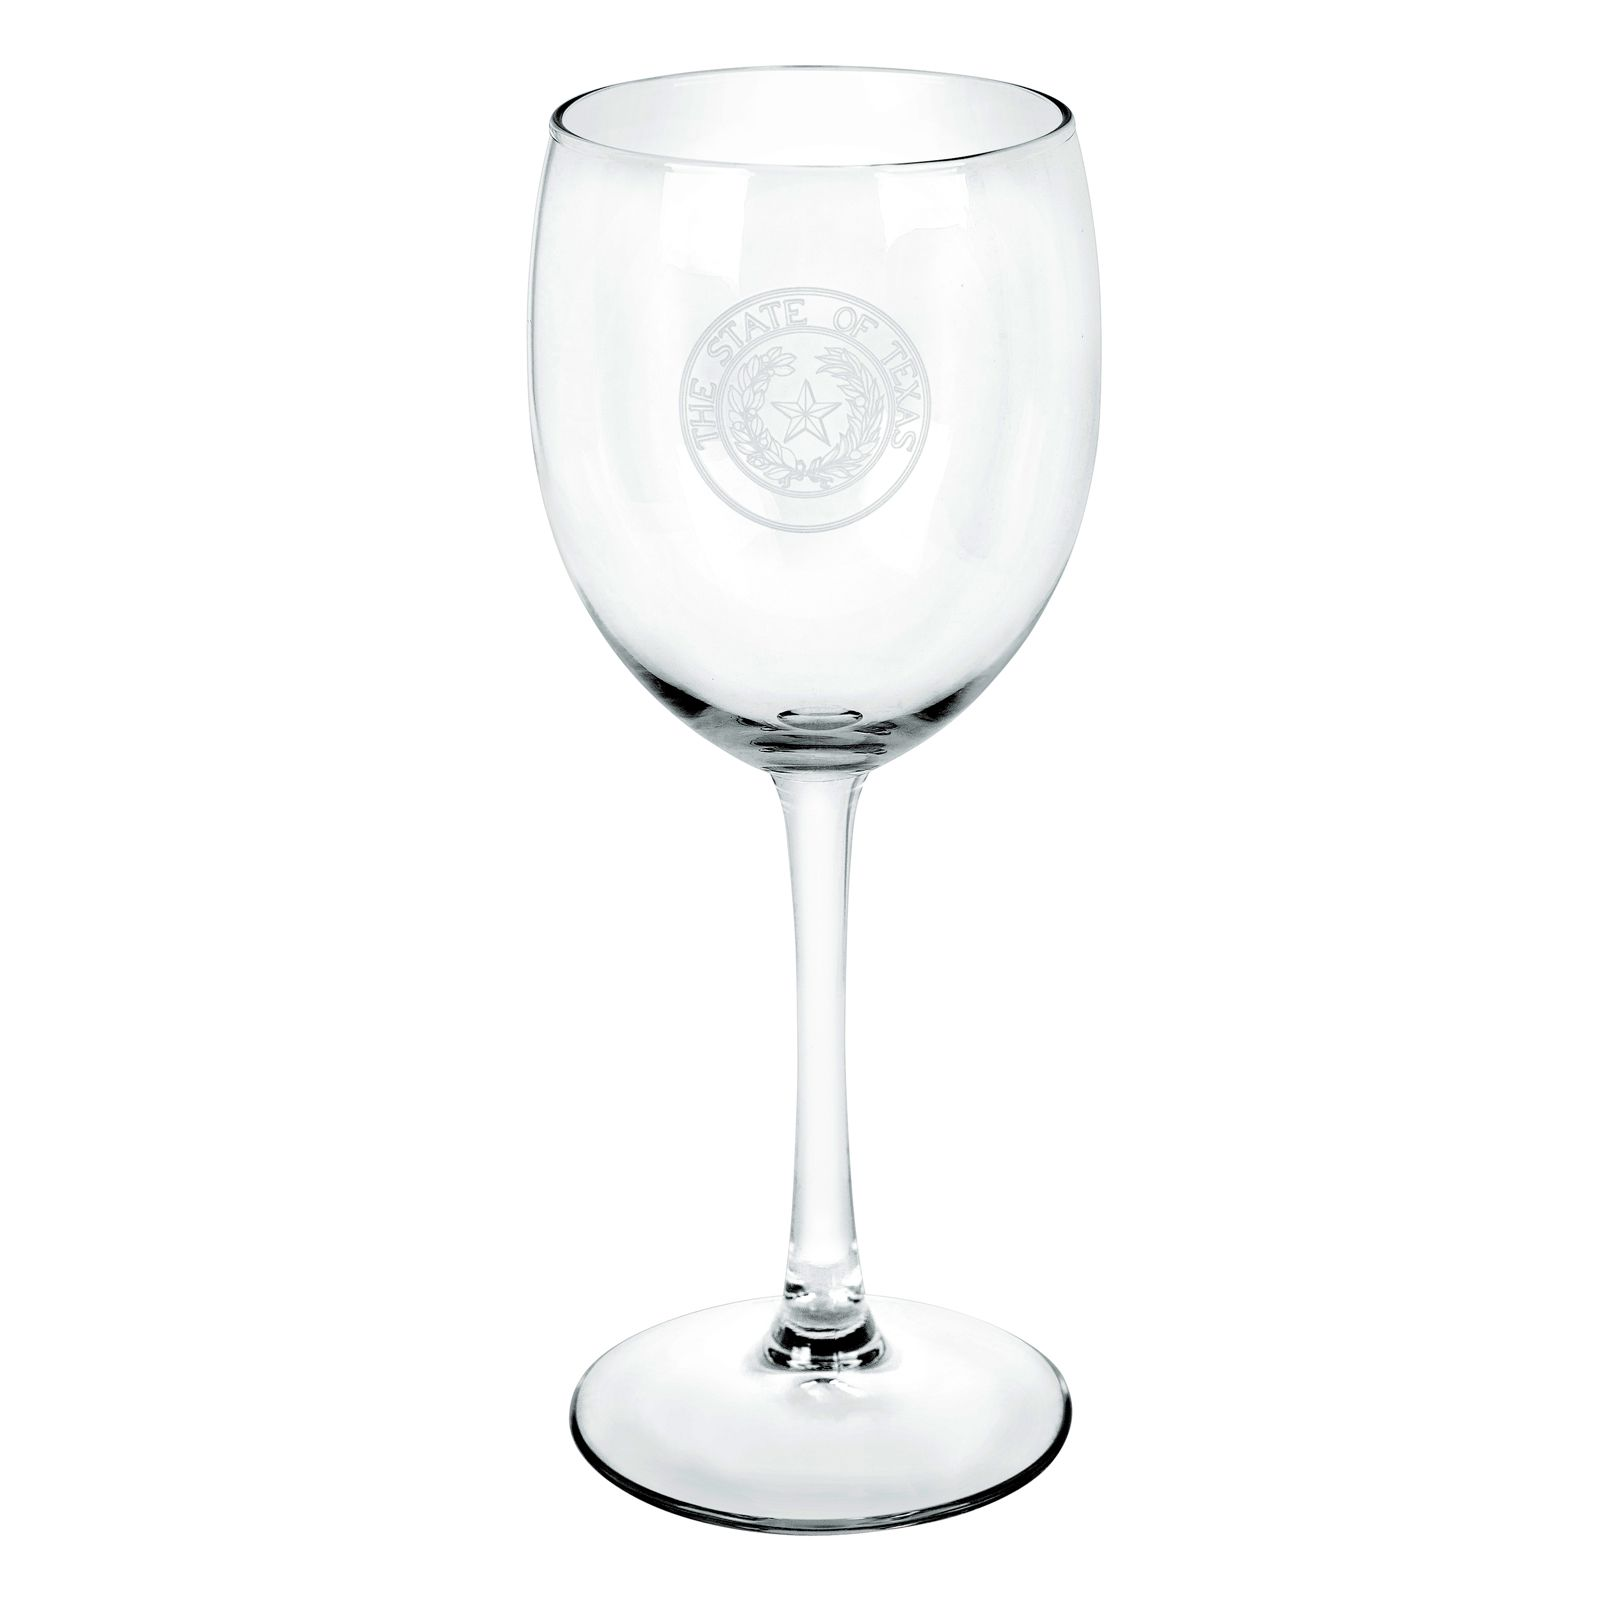 State Seal Stemmed Wine Glass